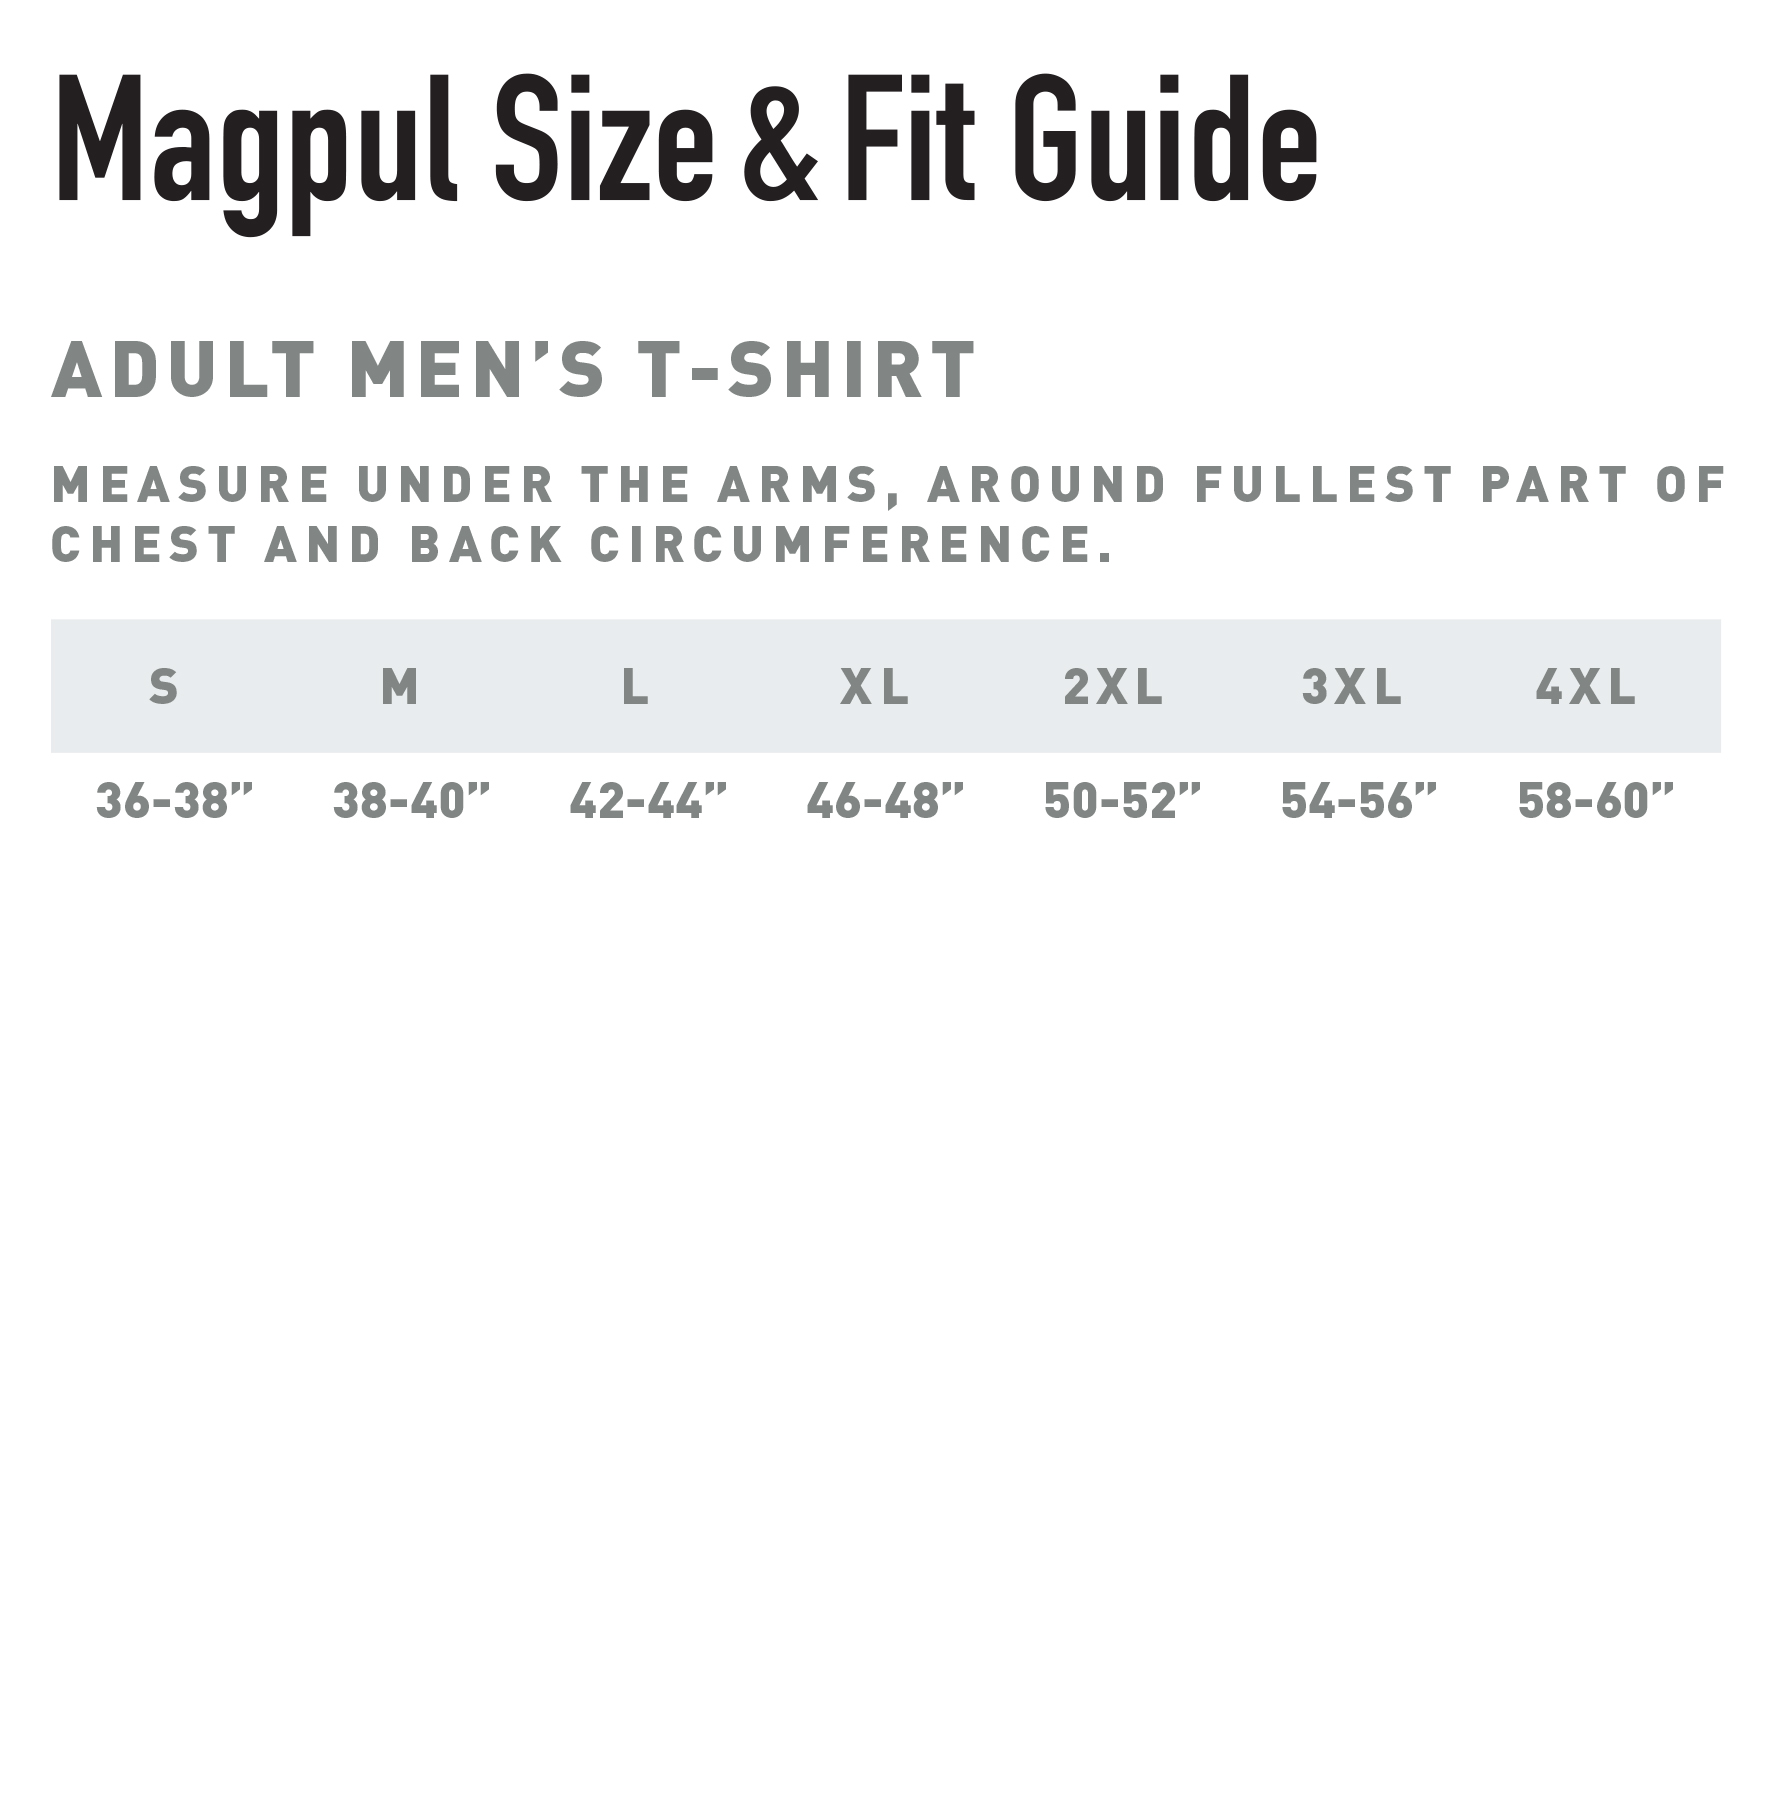 Magpul Cotton T-shirt size chart